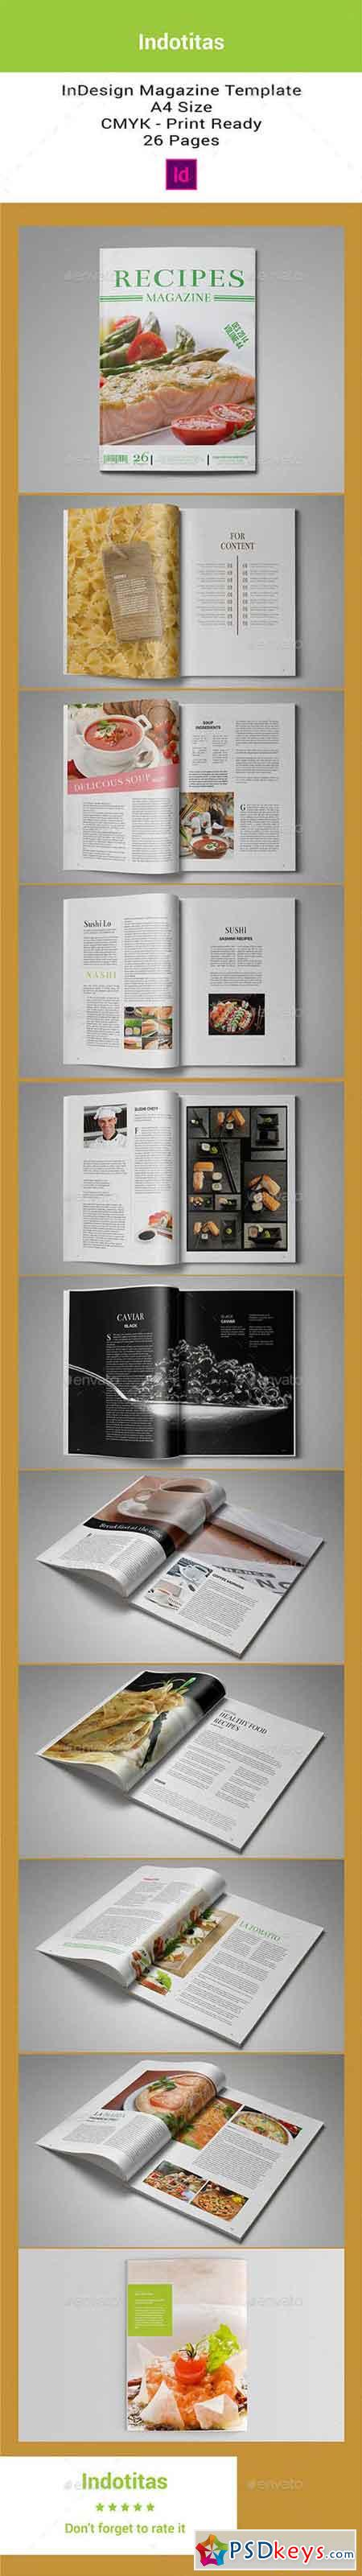 Food Recipes Magazine Template 8818337